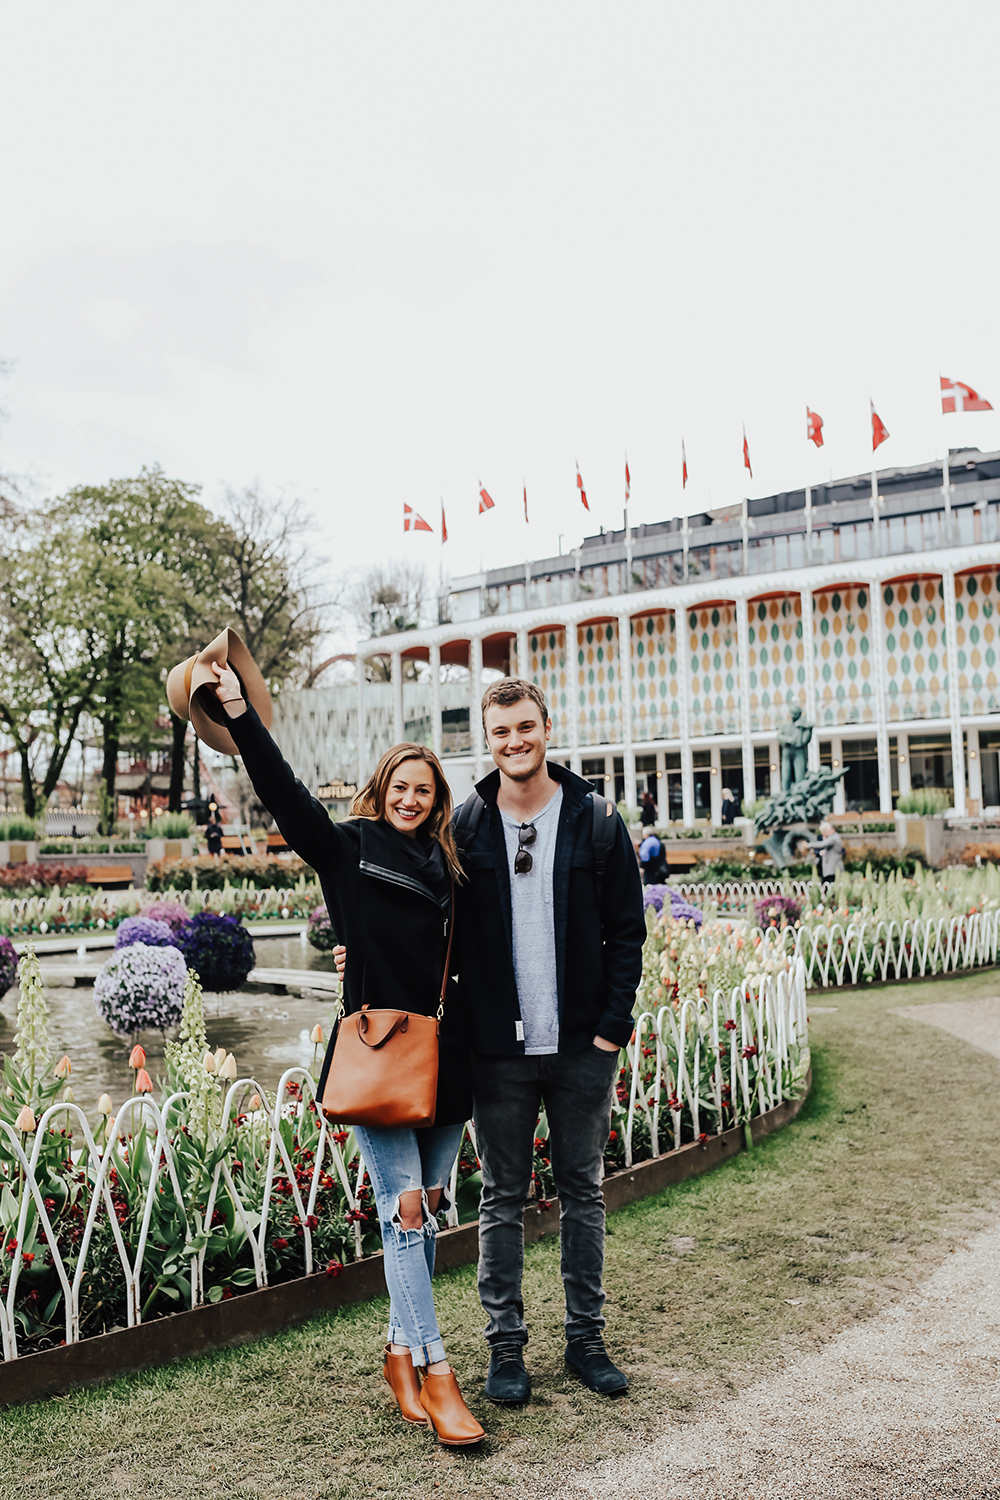 livvyland-blog-olivia-watson-fashion-travel-blogger-princess-cruises-scandinavia-what-to-wear-pack-copenhagen-denmark-amusement-park